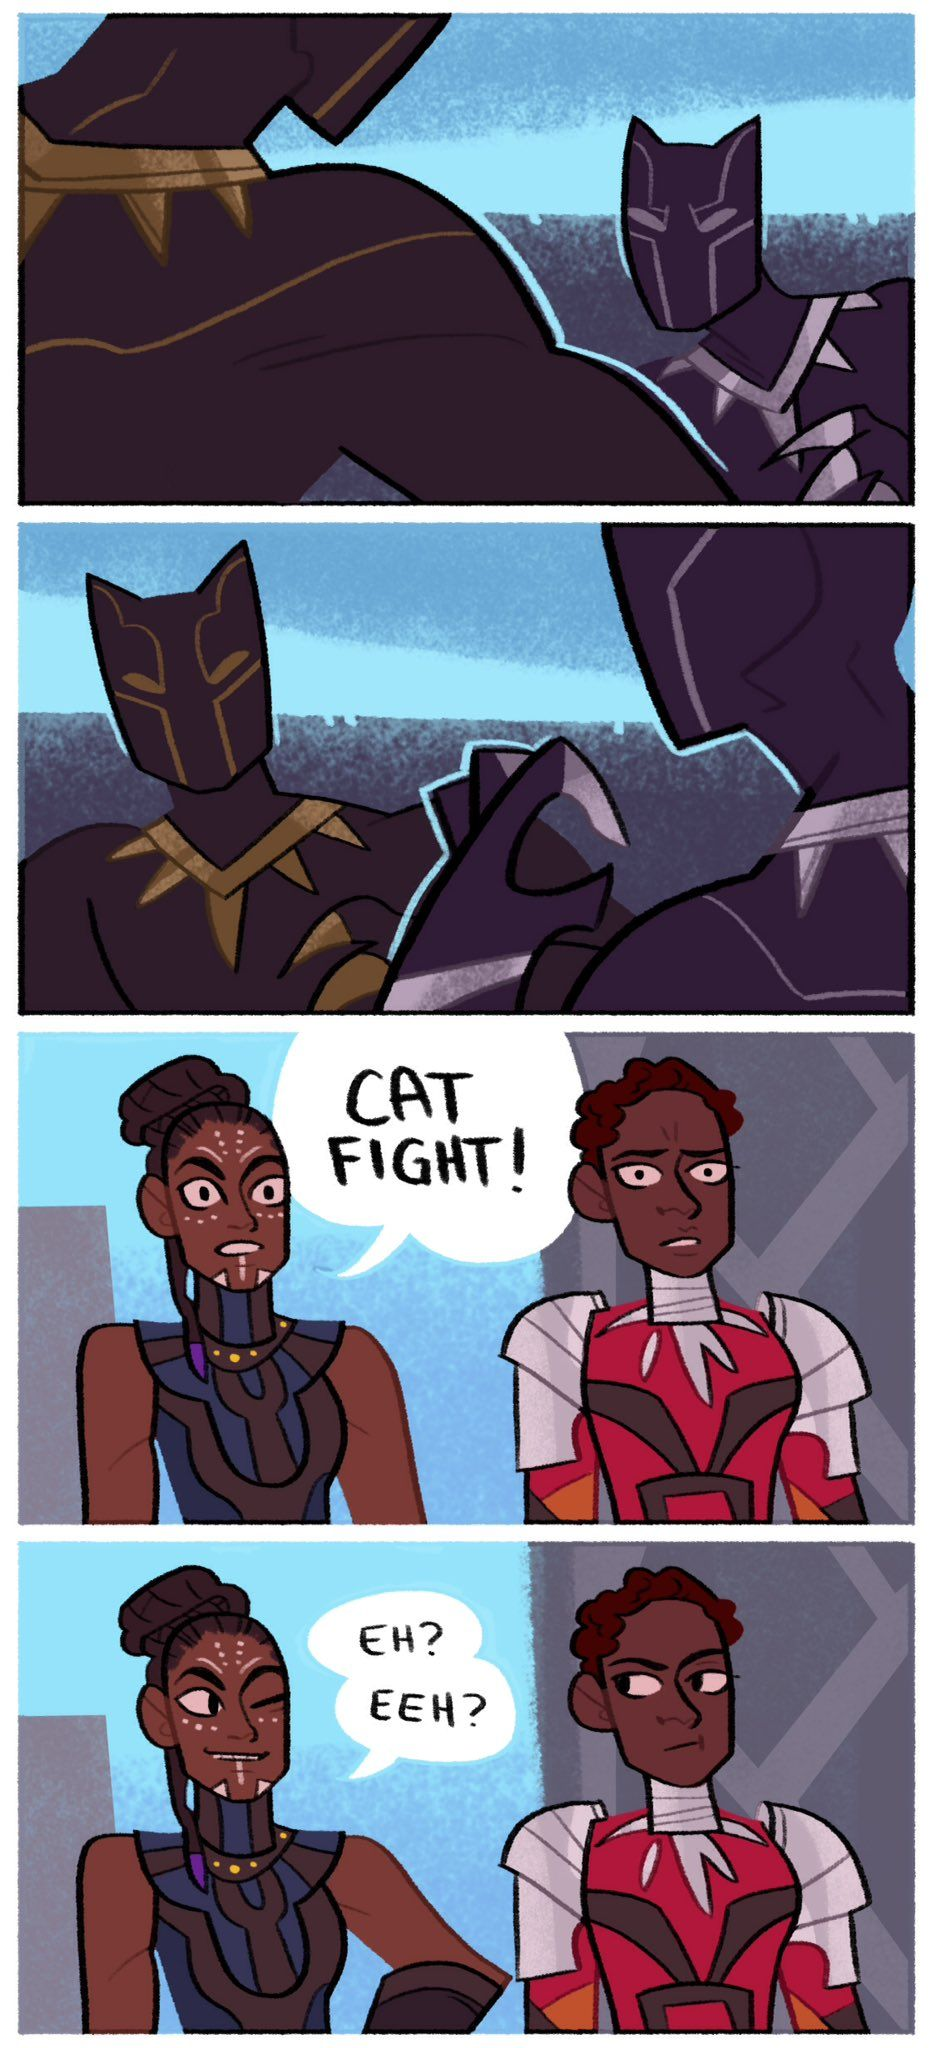 Four panel comic about the movie Black Panther. The first two panels show Black Panther and Killmonger fighting. In the third panel Shuri declares it a cat fight, which earns her a look from Nakia in the last panel.